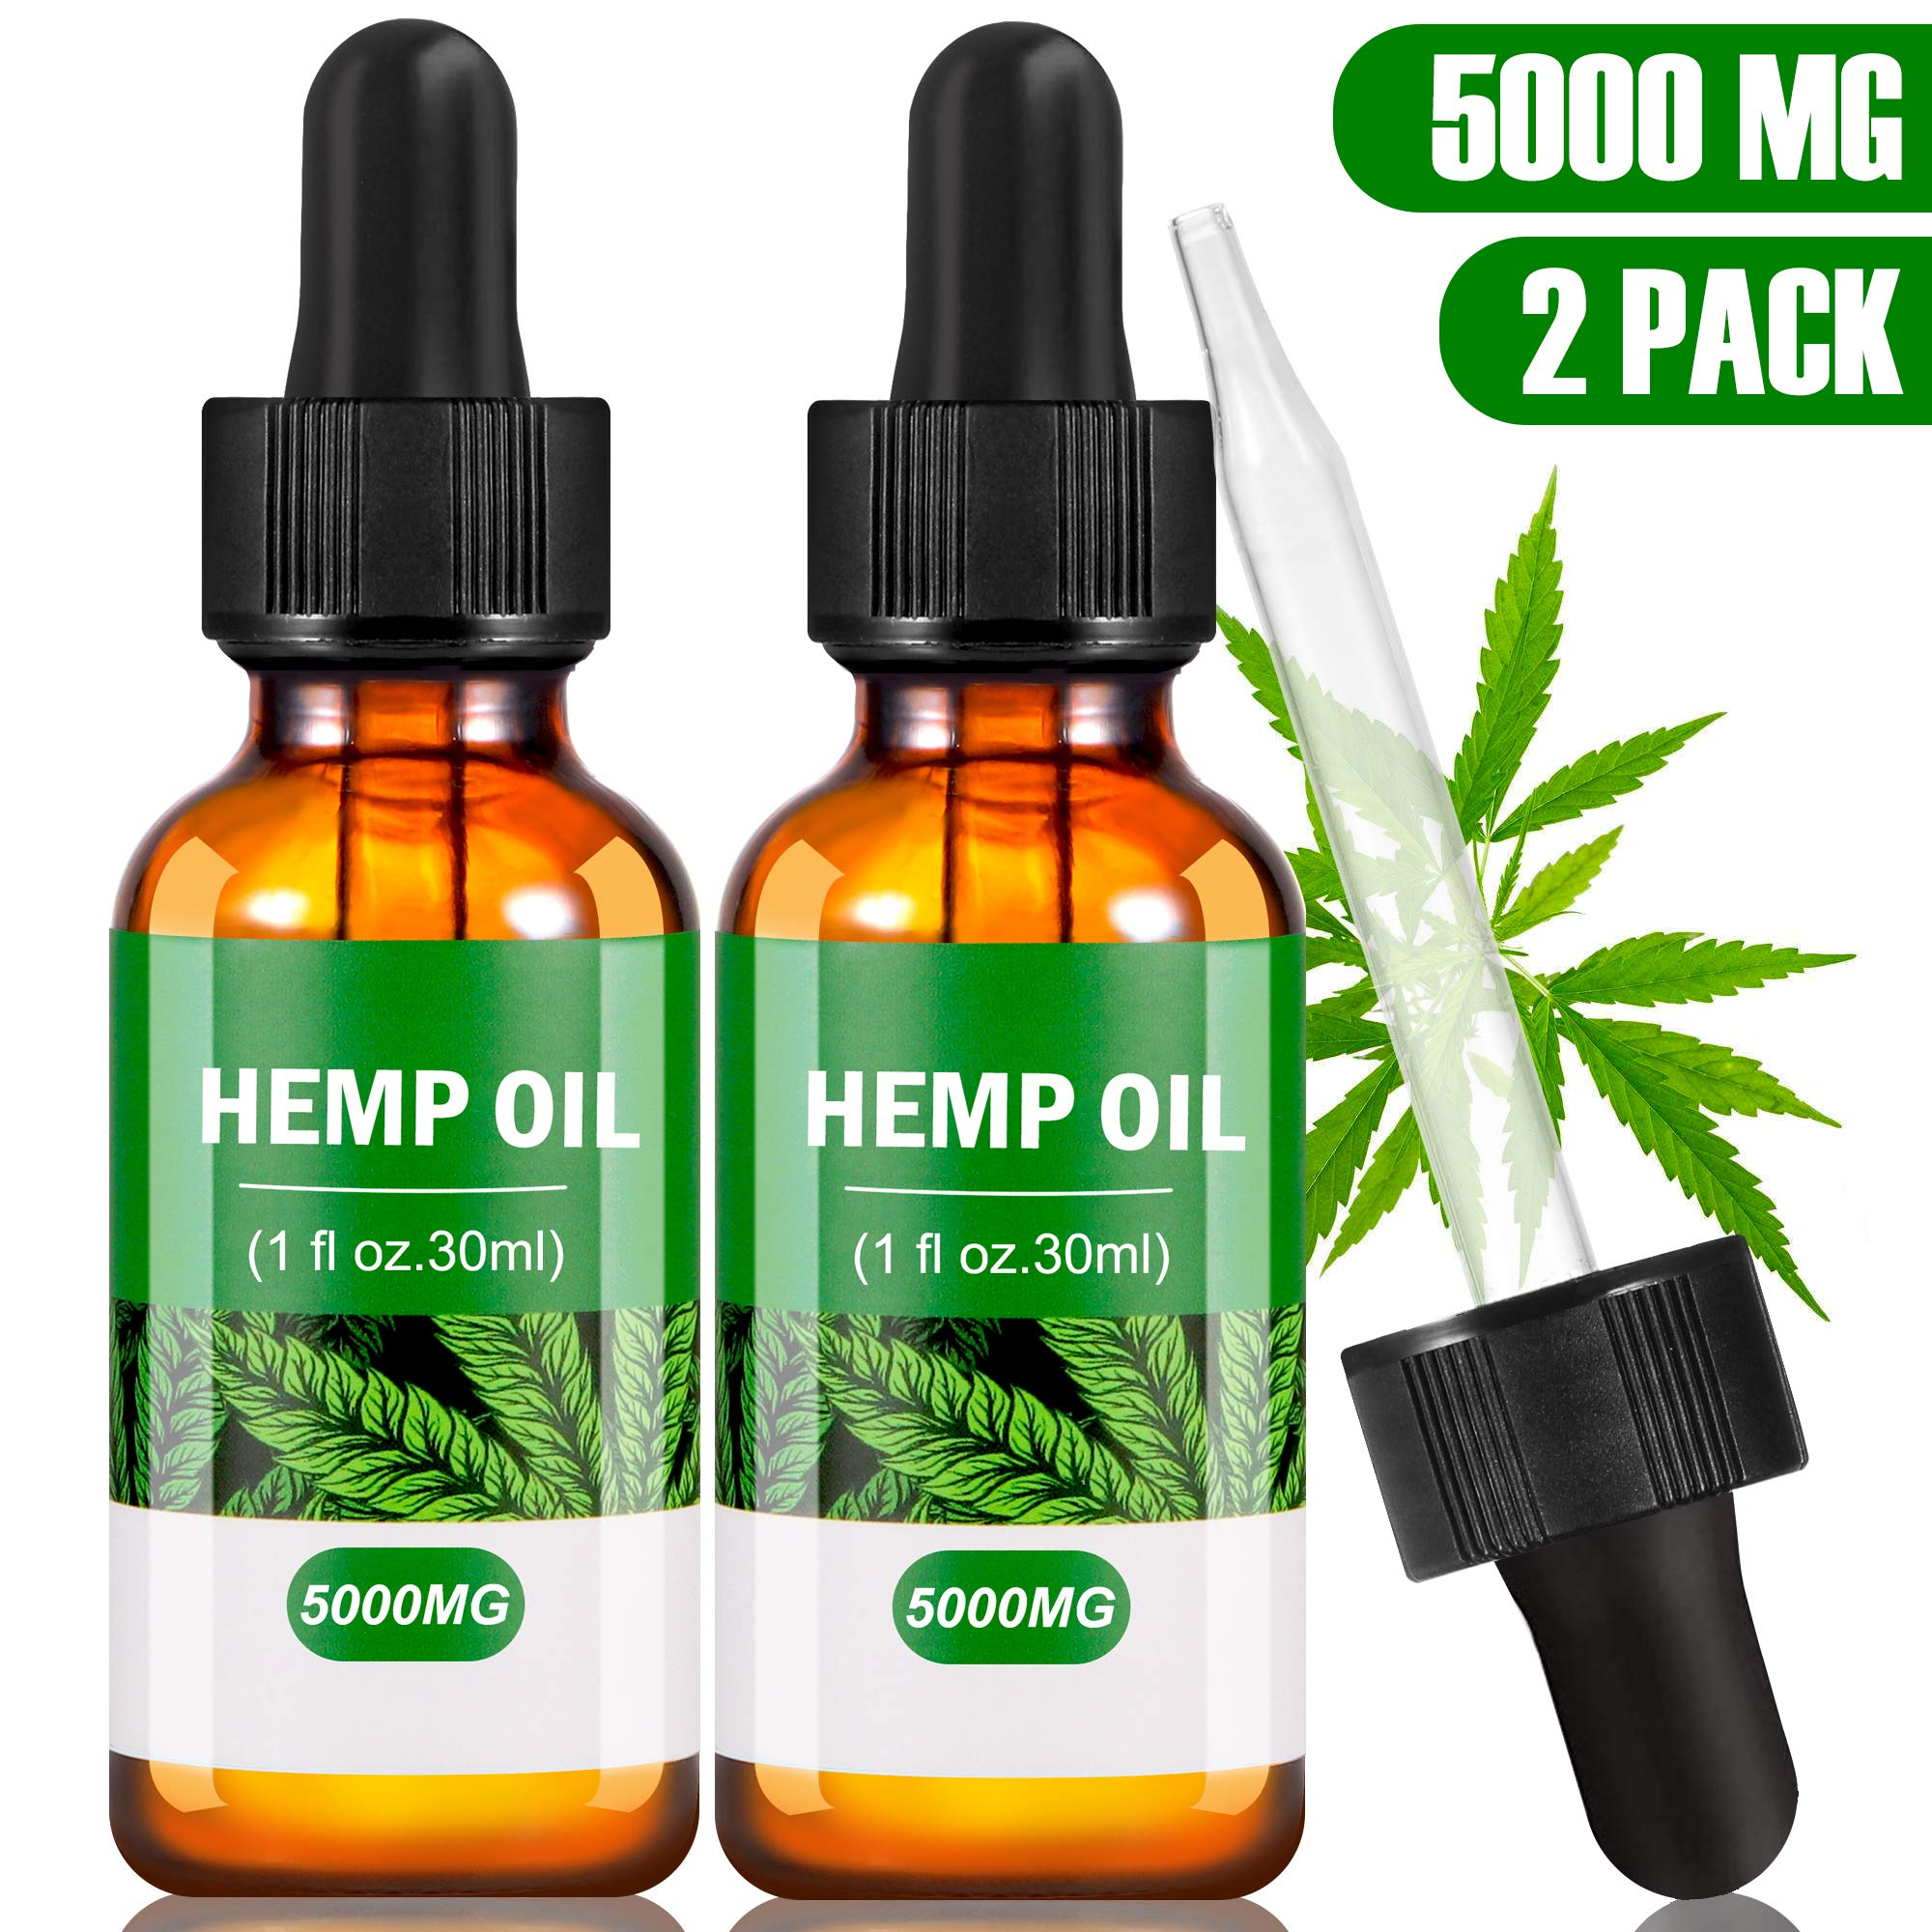 (2-Pack) Hemp 5000 MG Extract for Pain, Anxiety & Stress Relief- Helps with Sleep, Skin & Hair